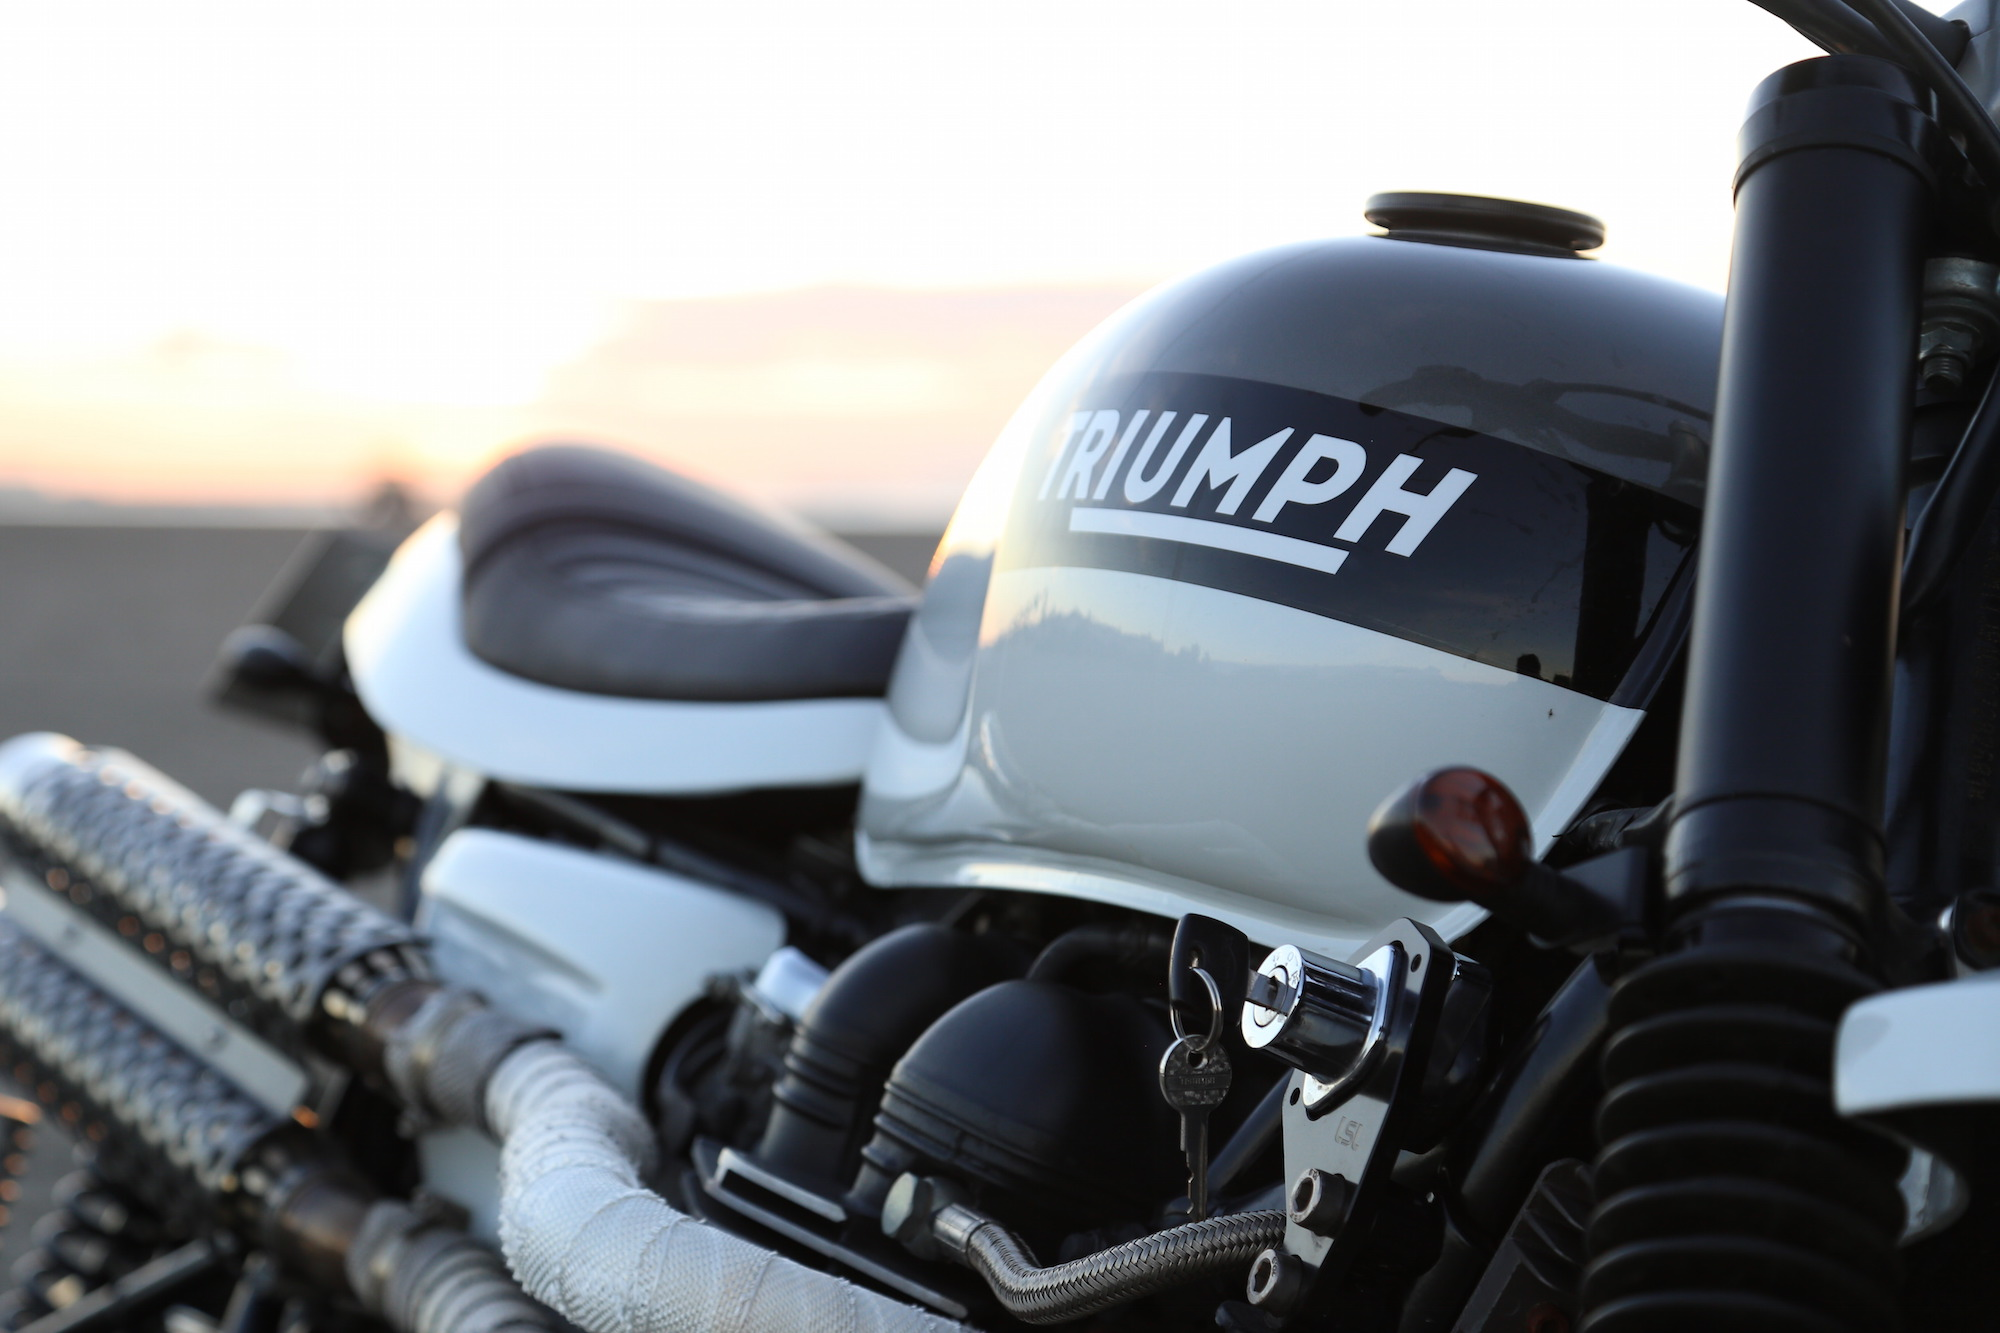 Triumph Scrambler by Tamarit Spanish Motorcycles 6